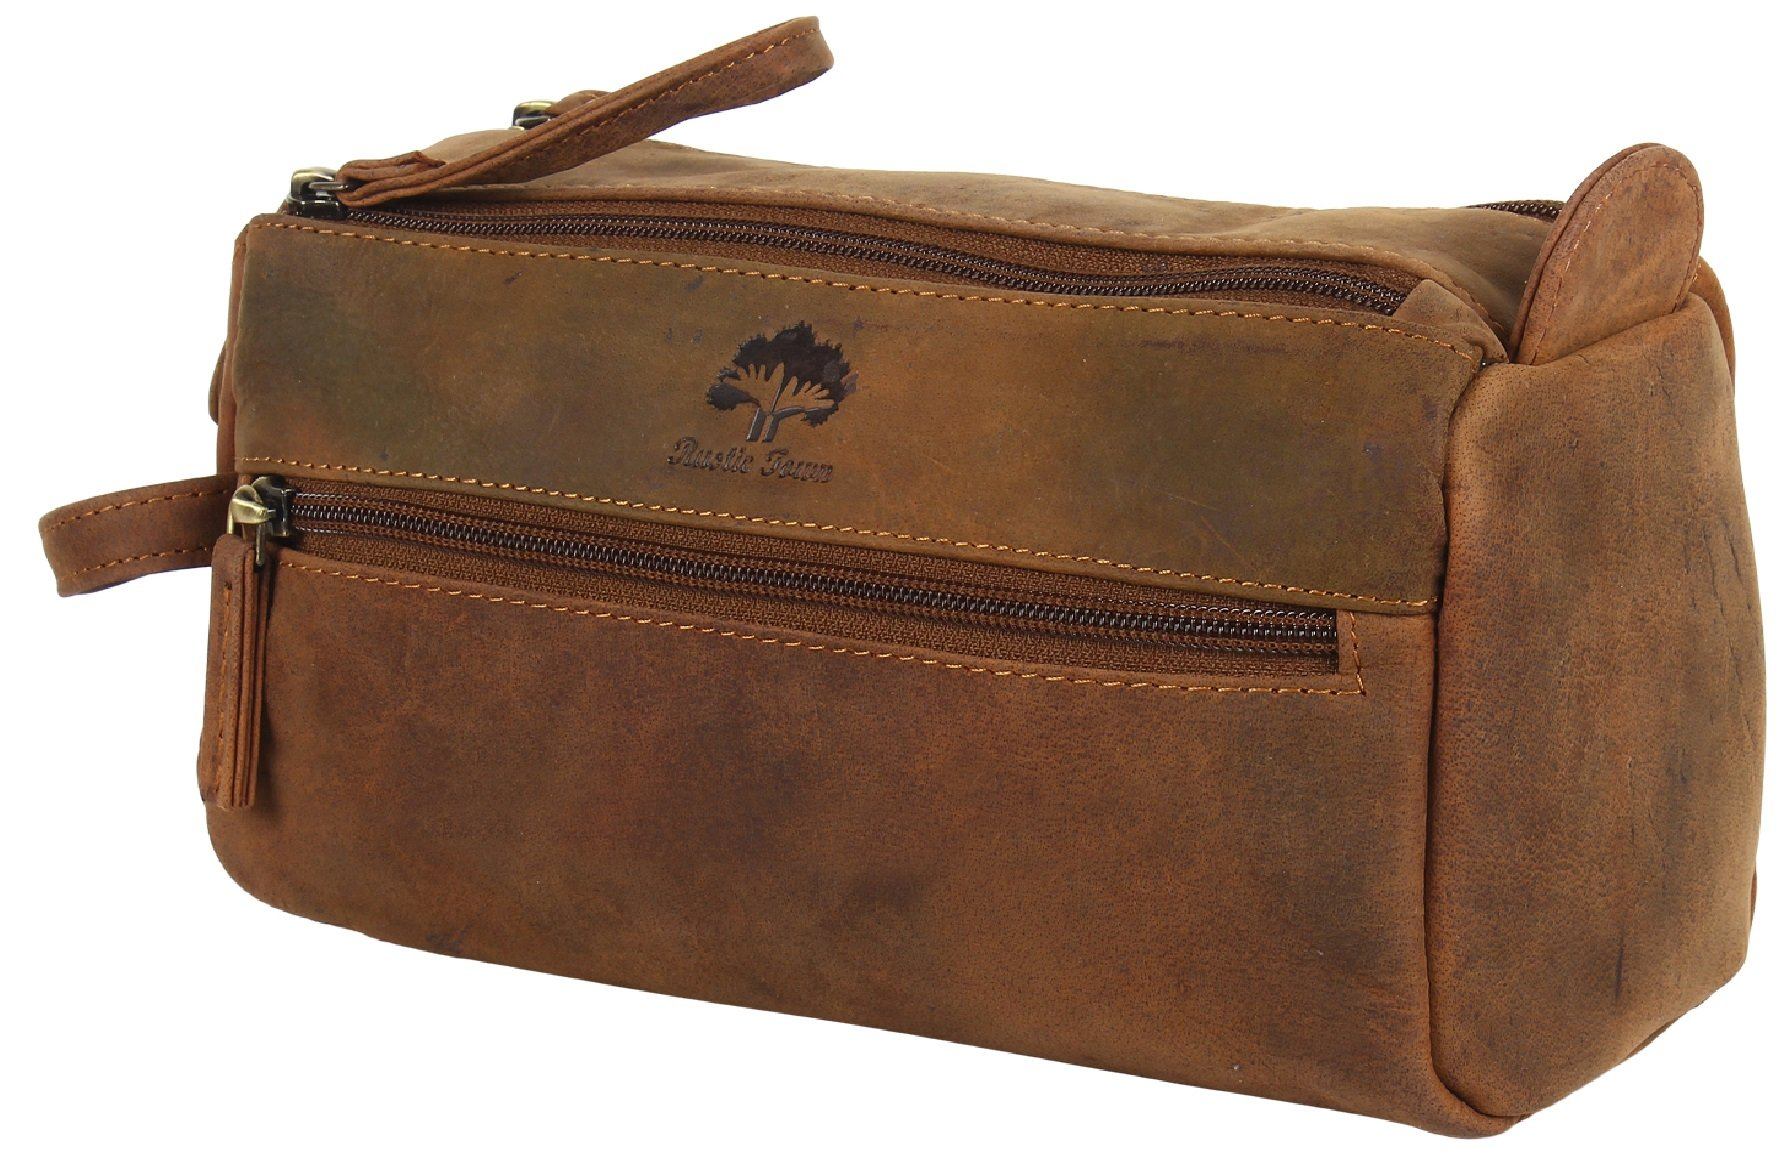 Genuine Leather Travel Toiletry Bag - Hygiene Organizer Dopp Kit By Rustic Town